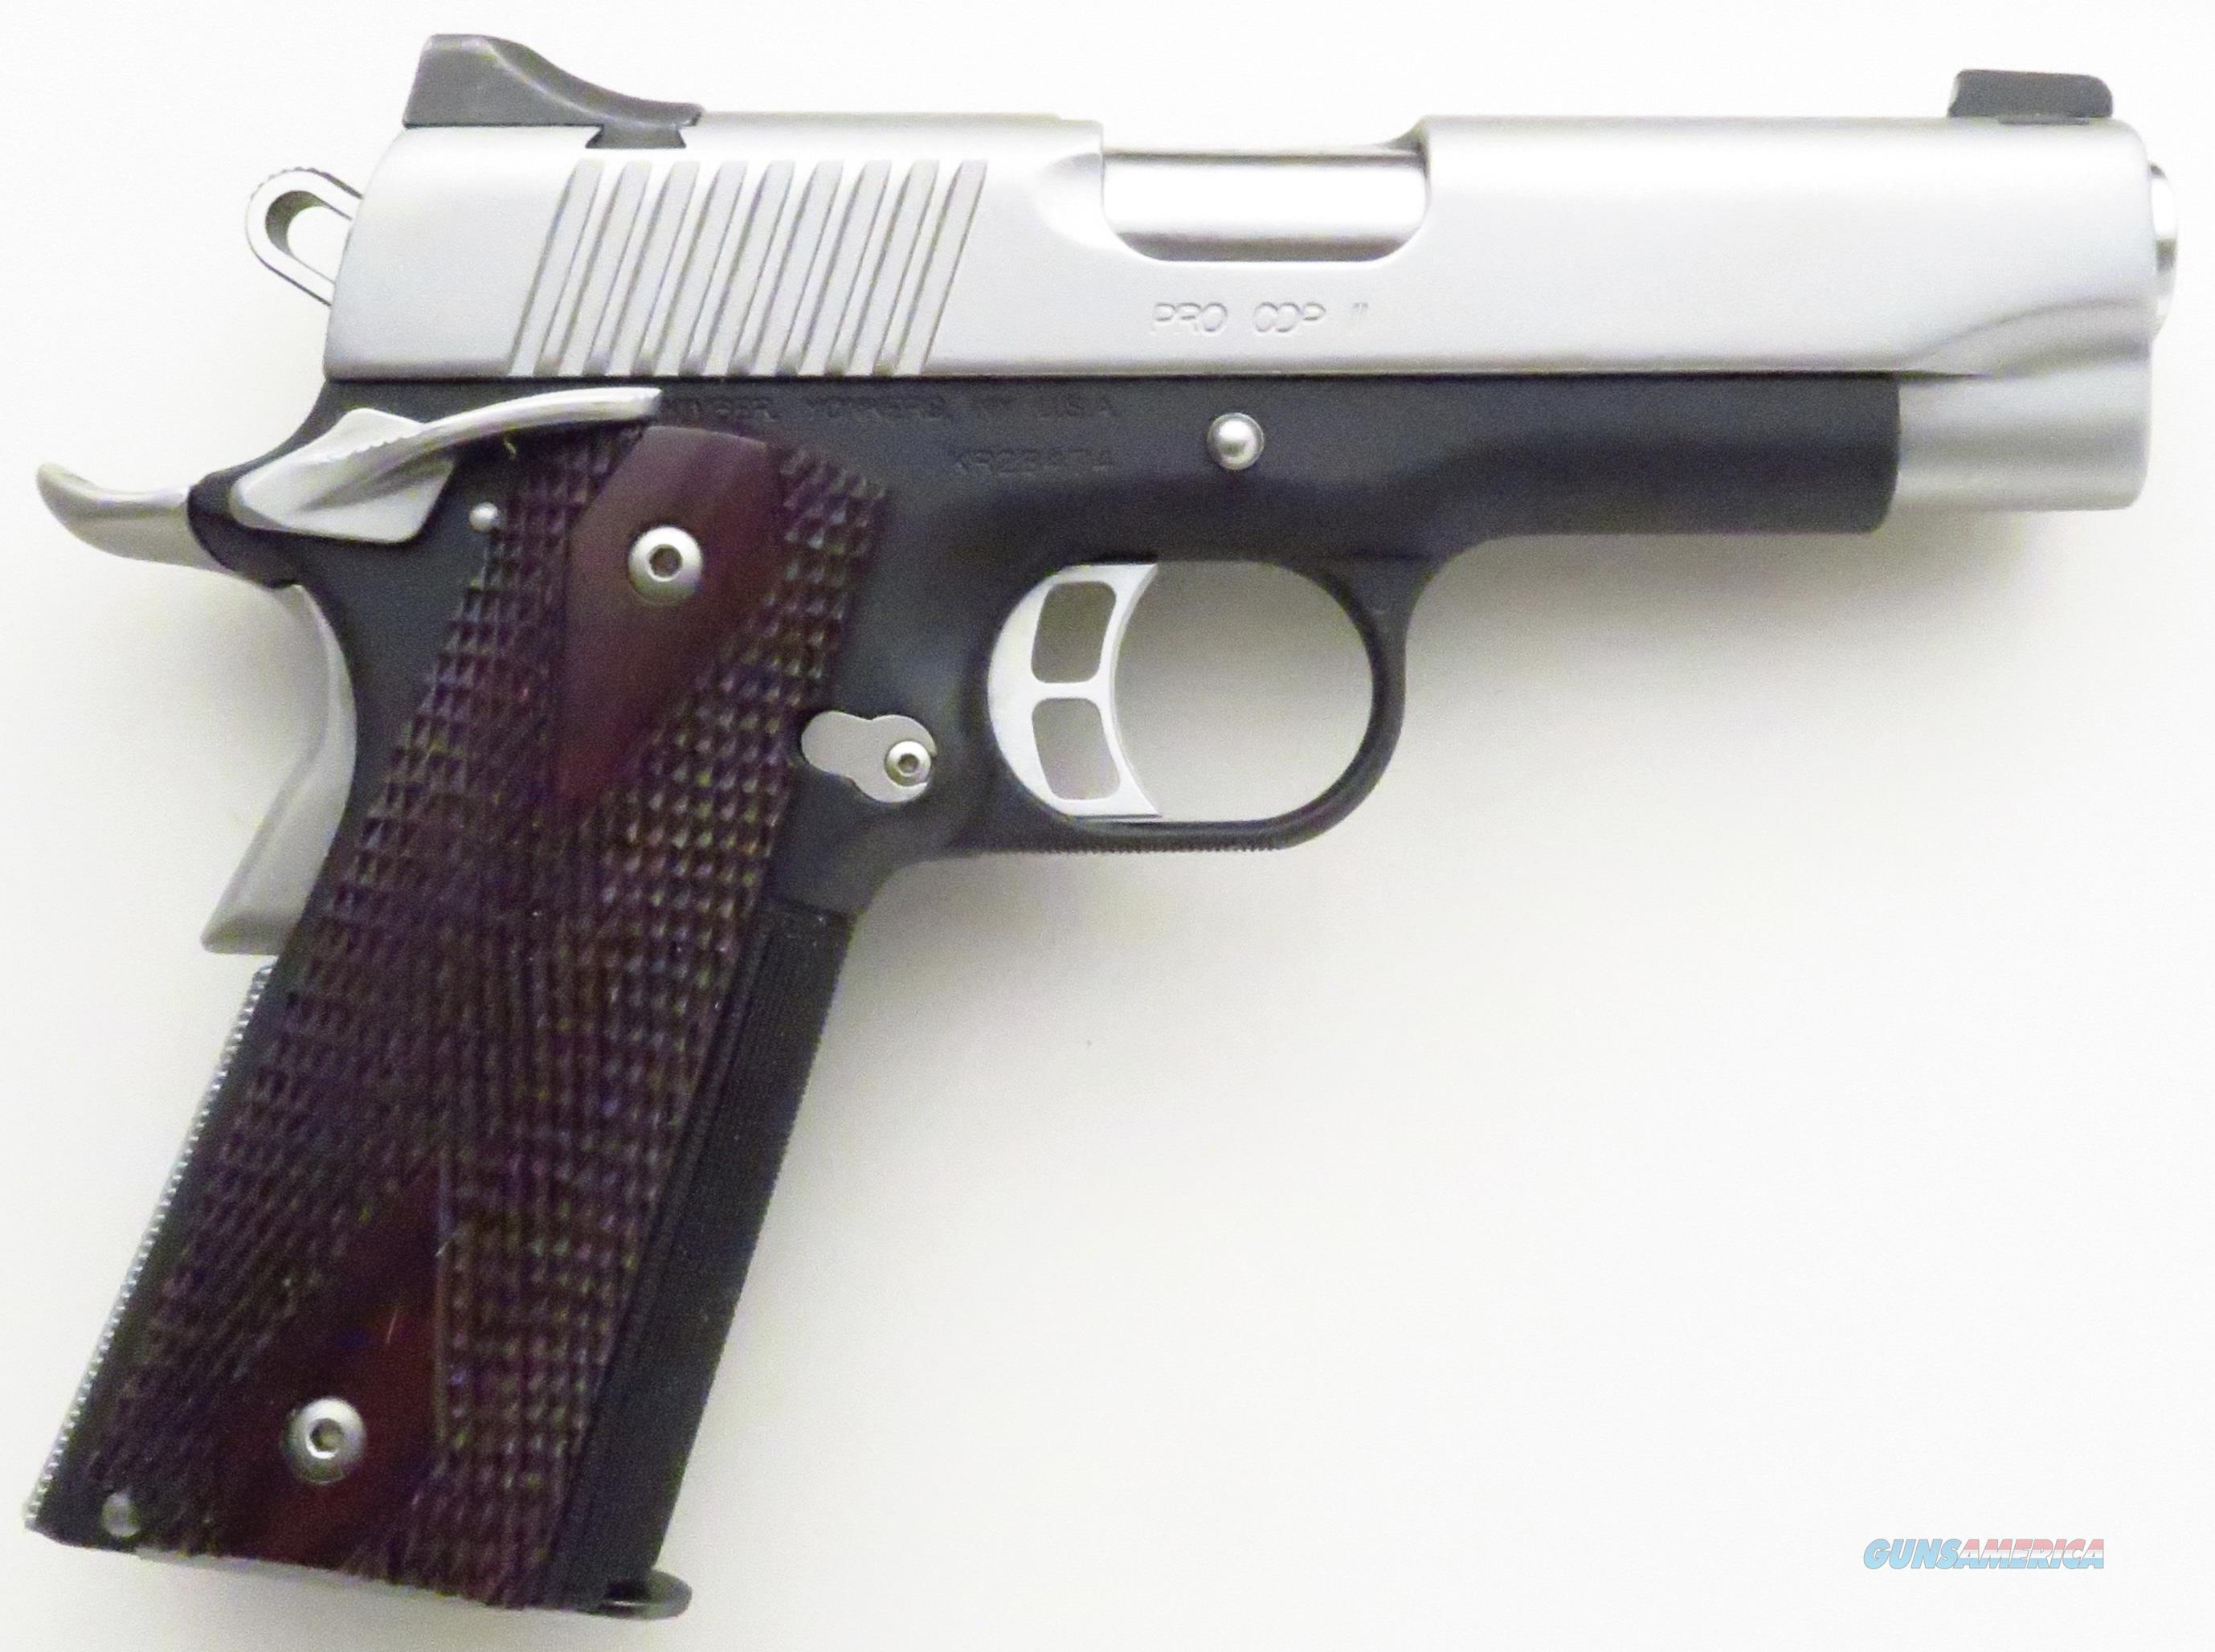 Kimber Pro CDP II .45 ACP, 4-inch, 28 ounces, night sights, ambi safety, stainless slide  Guns > Pistols > Kimber of America Pistols